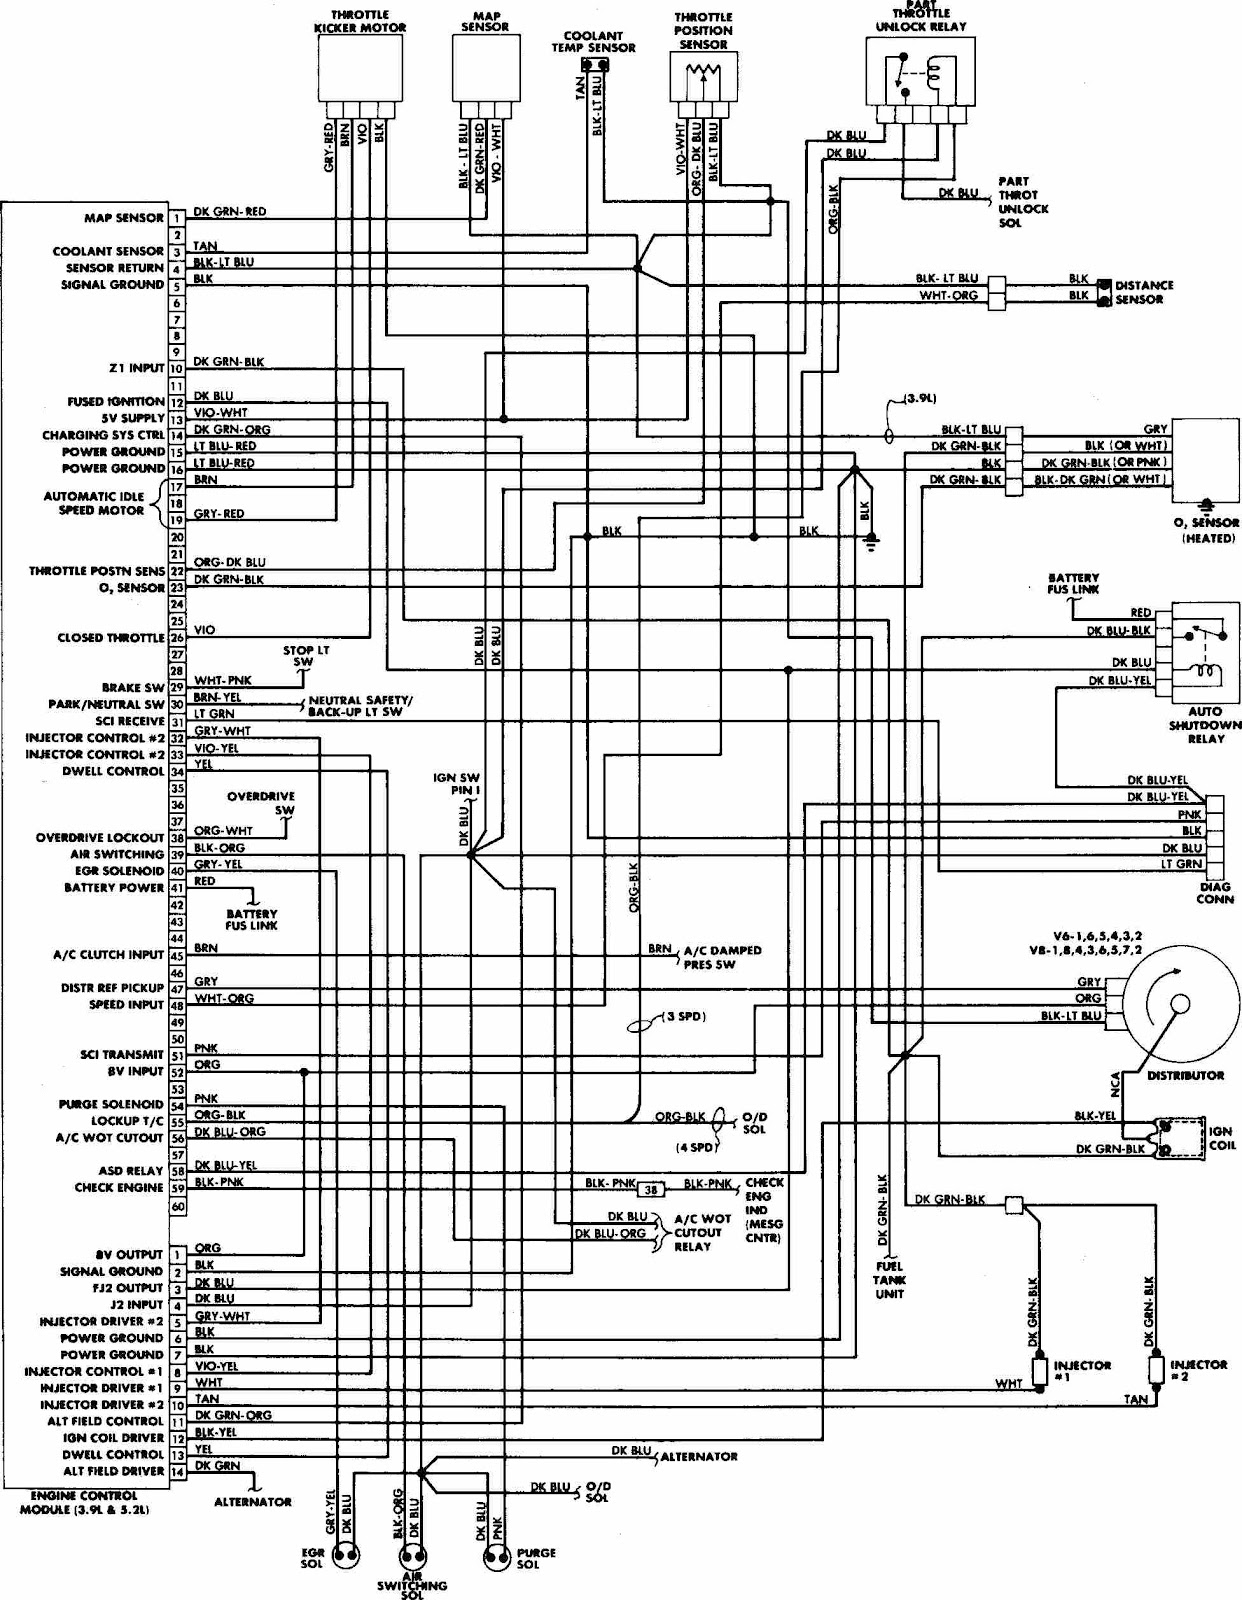 1948 ford truck wiring diagram | wiring library 1948 dodge pickup wiring diagram 1975 dodge pickup wiring diagram #9